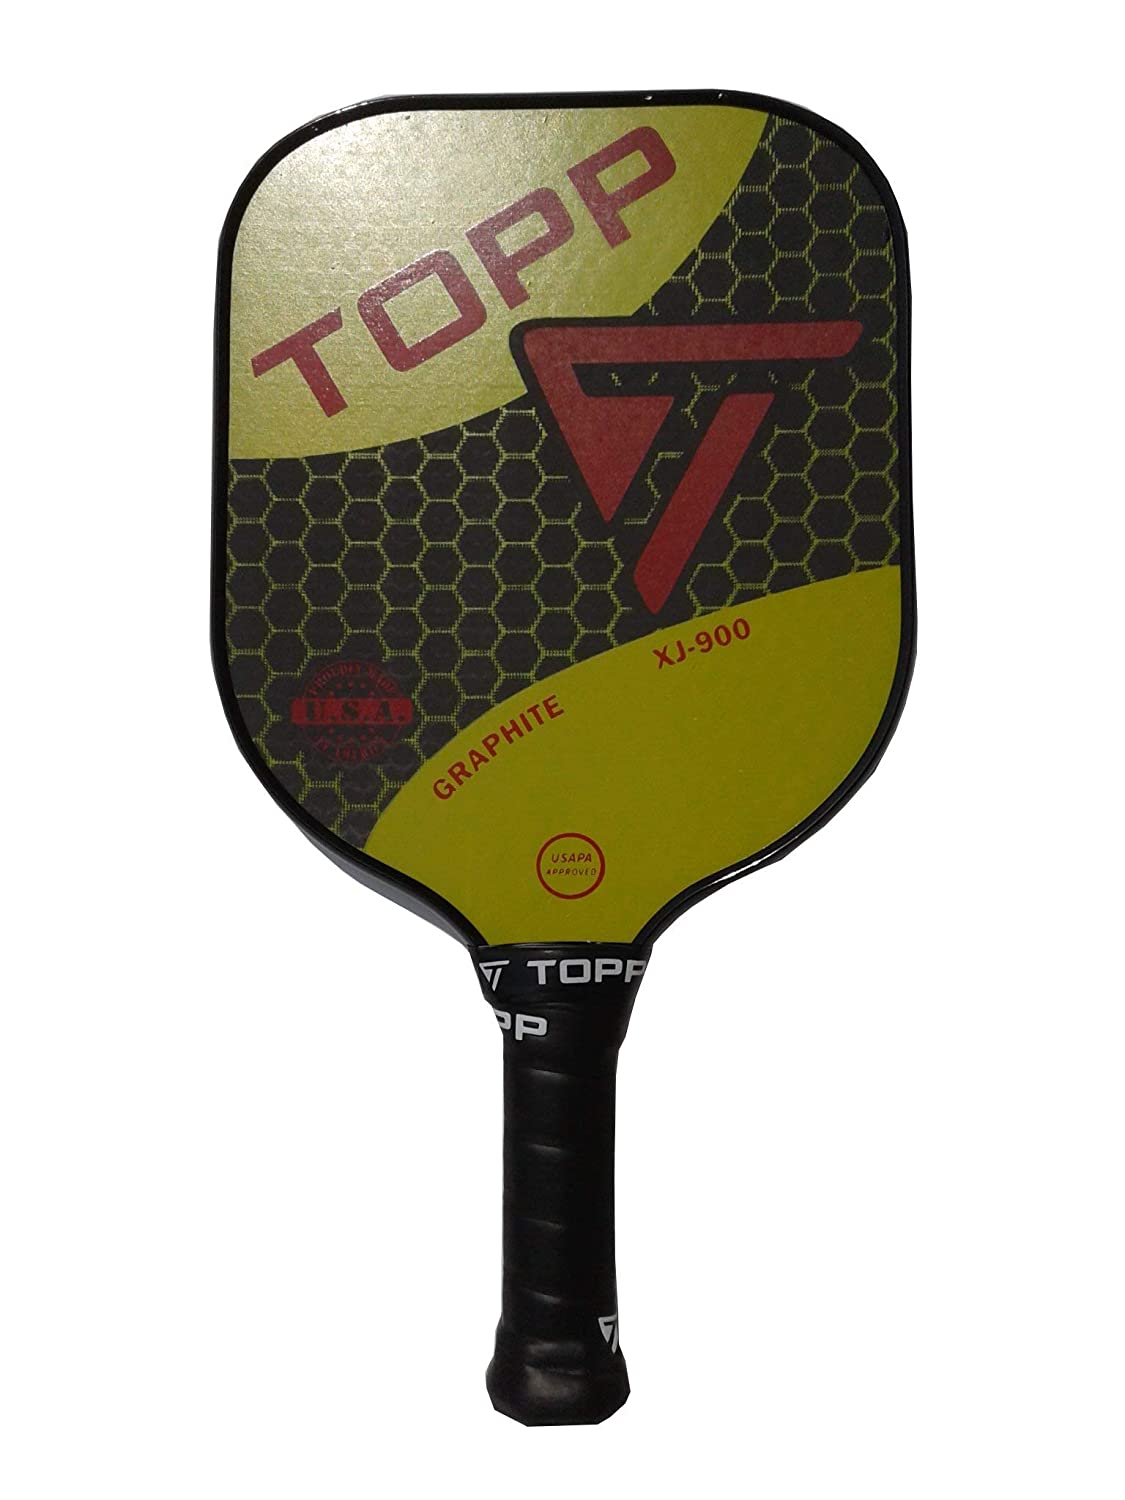 Amazon.com: Topp Pickleball Paddle XJ 900 Graphite: Sports ...